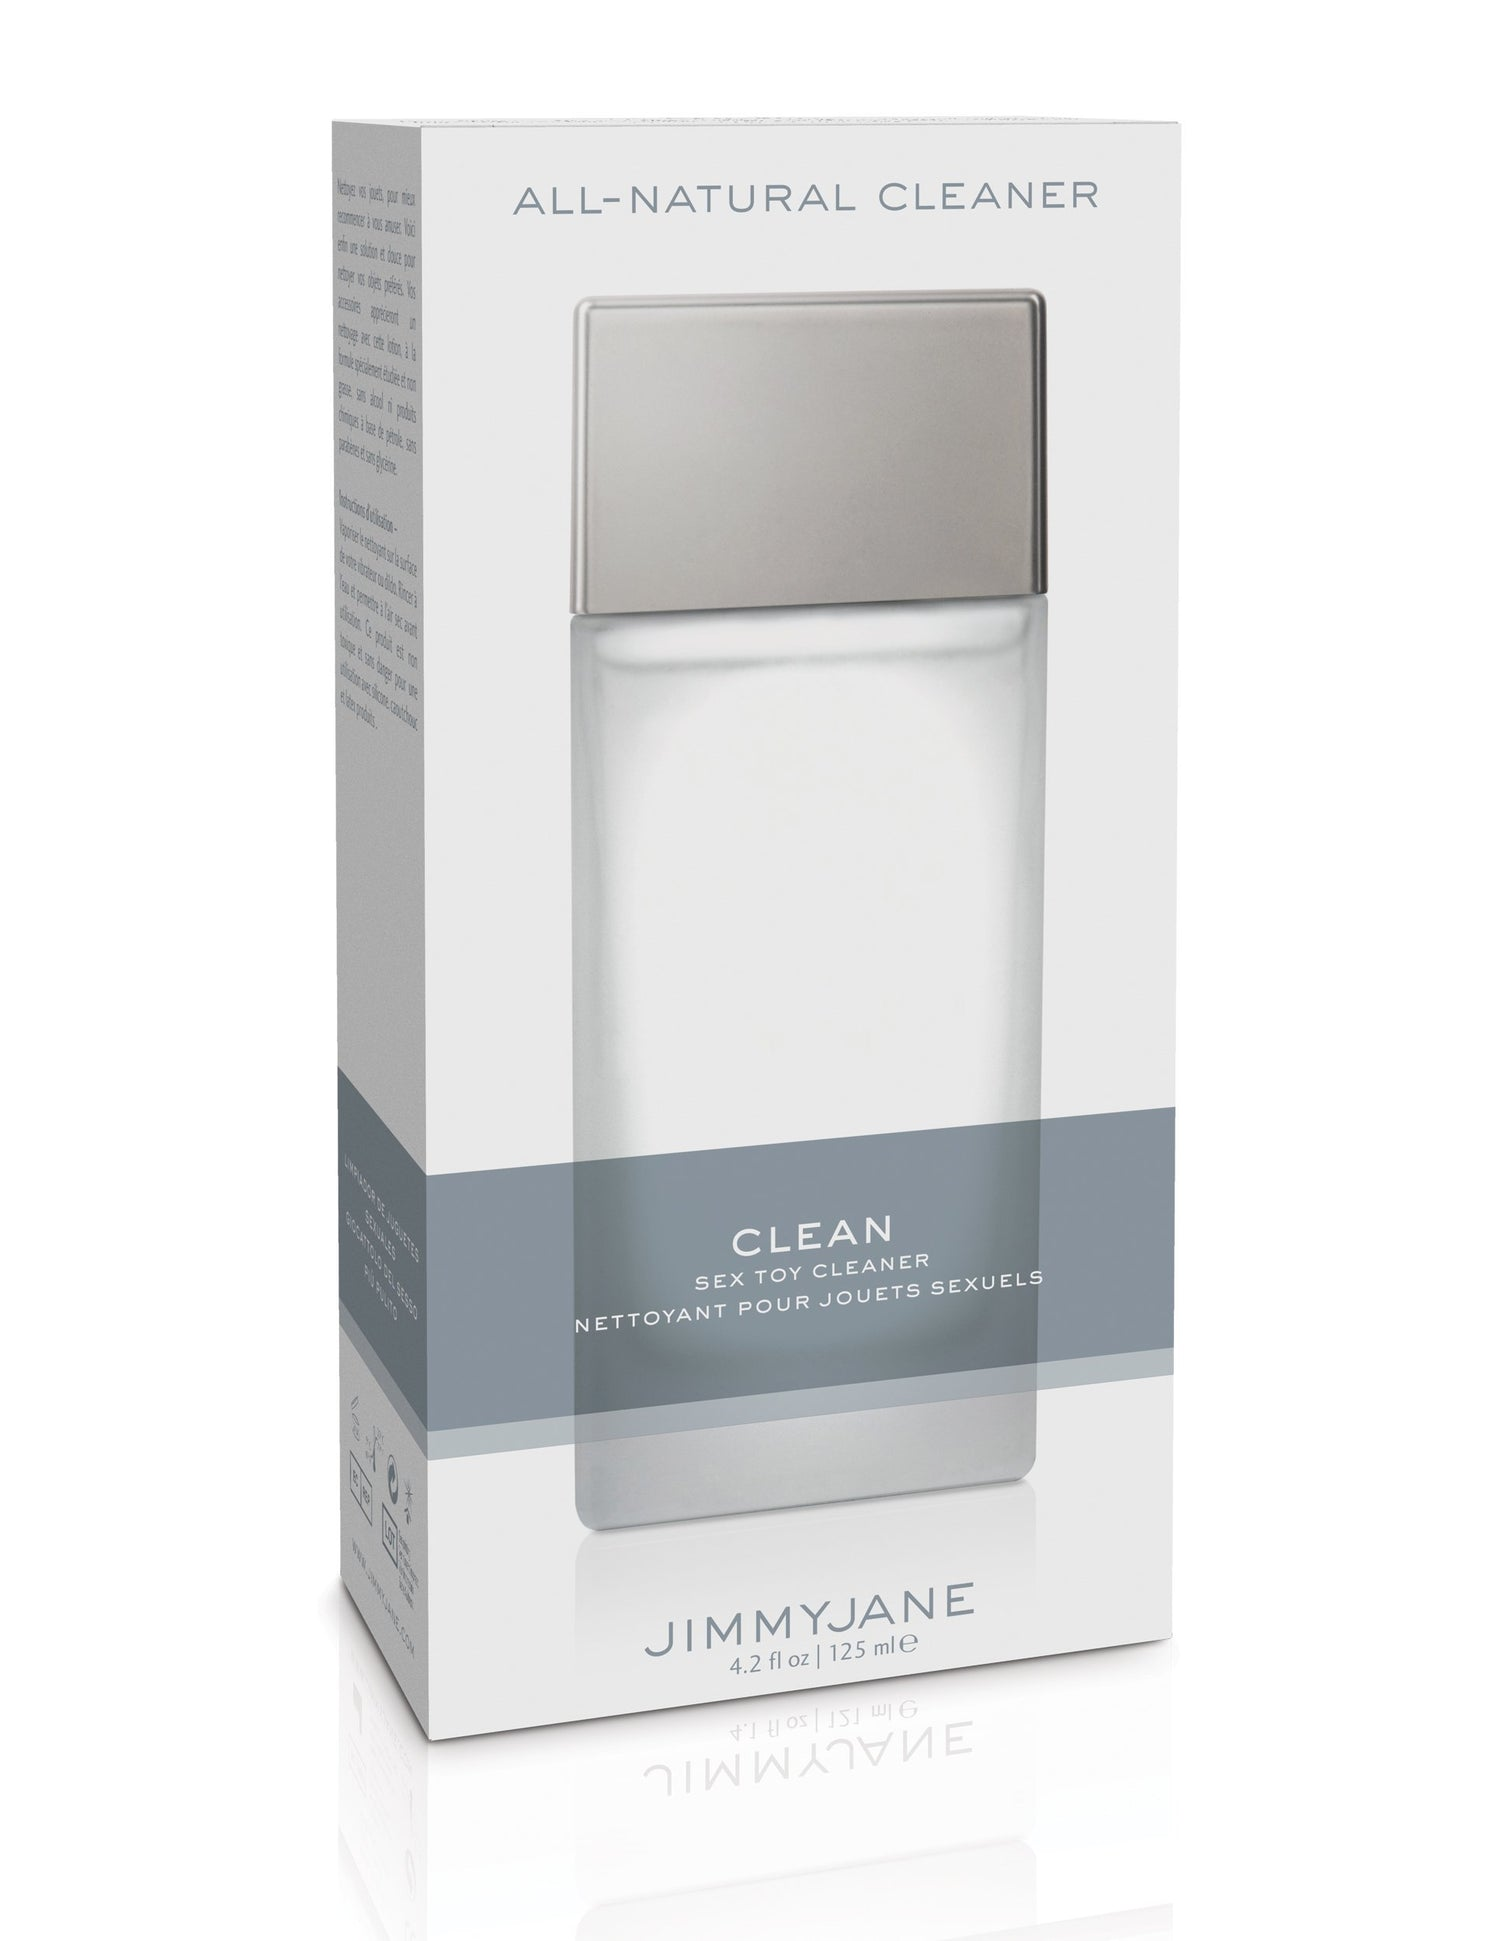 JimmyJane - Clean Sex Toy Cleaner 4.2 oz | CherryAffairs Singapore